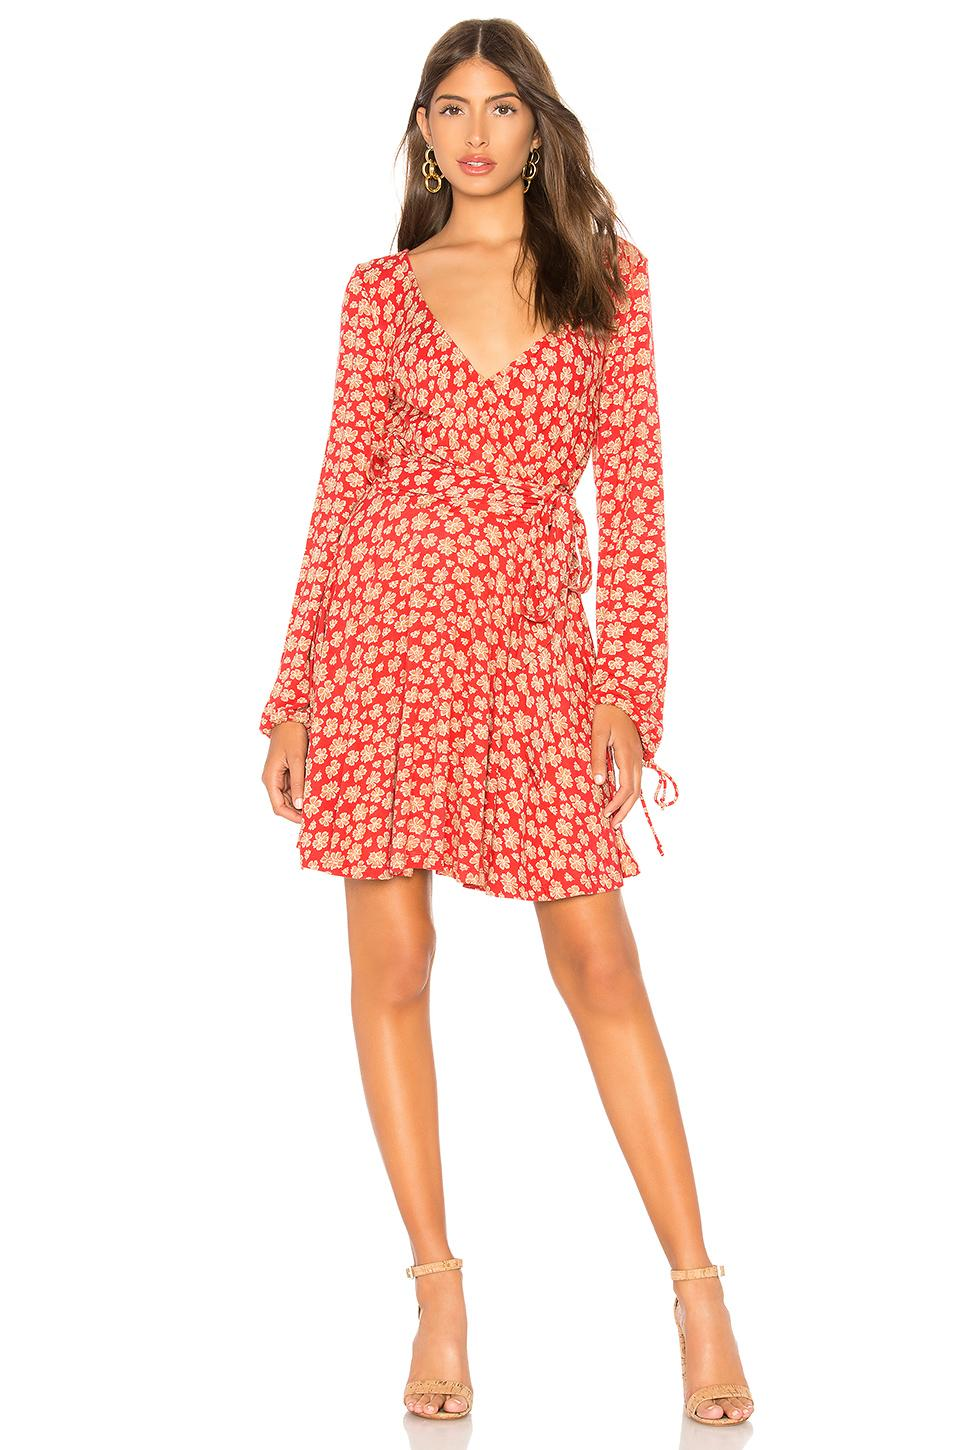 75d05848ced1 Free People Pradera Floral Minidress In Red | ModeSens